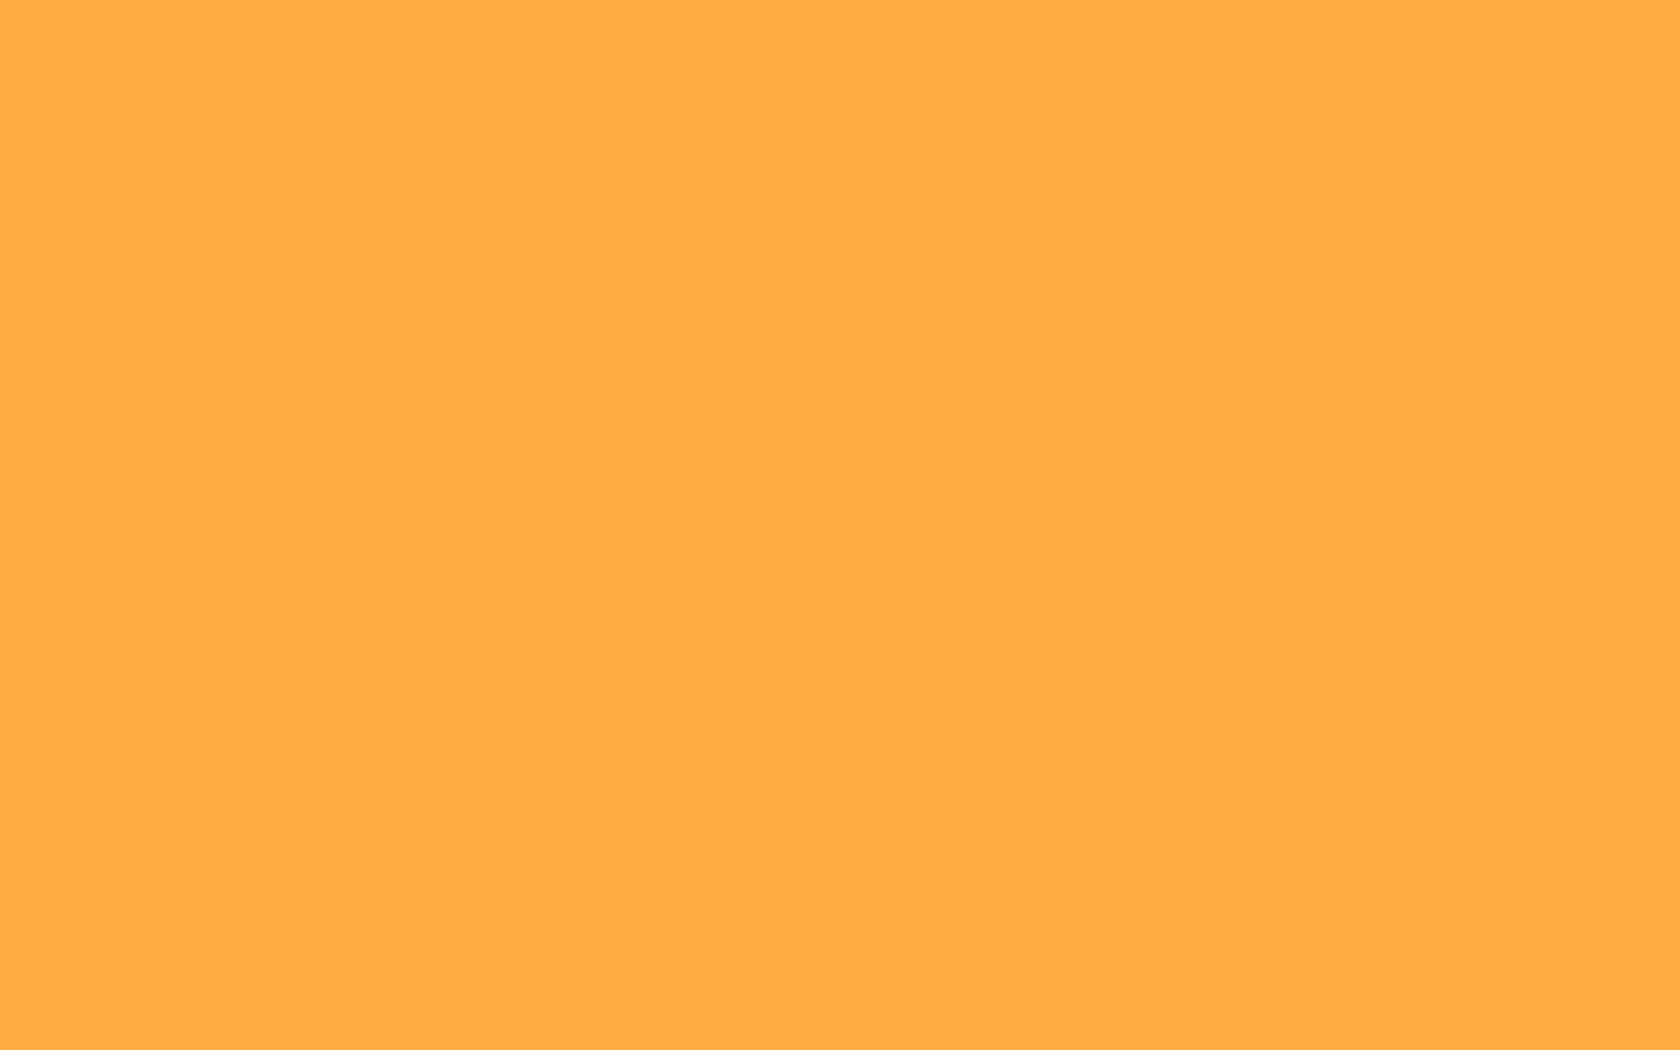 1680x1050 Yellow Orange Solid Color Background